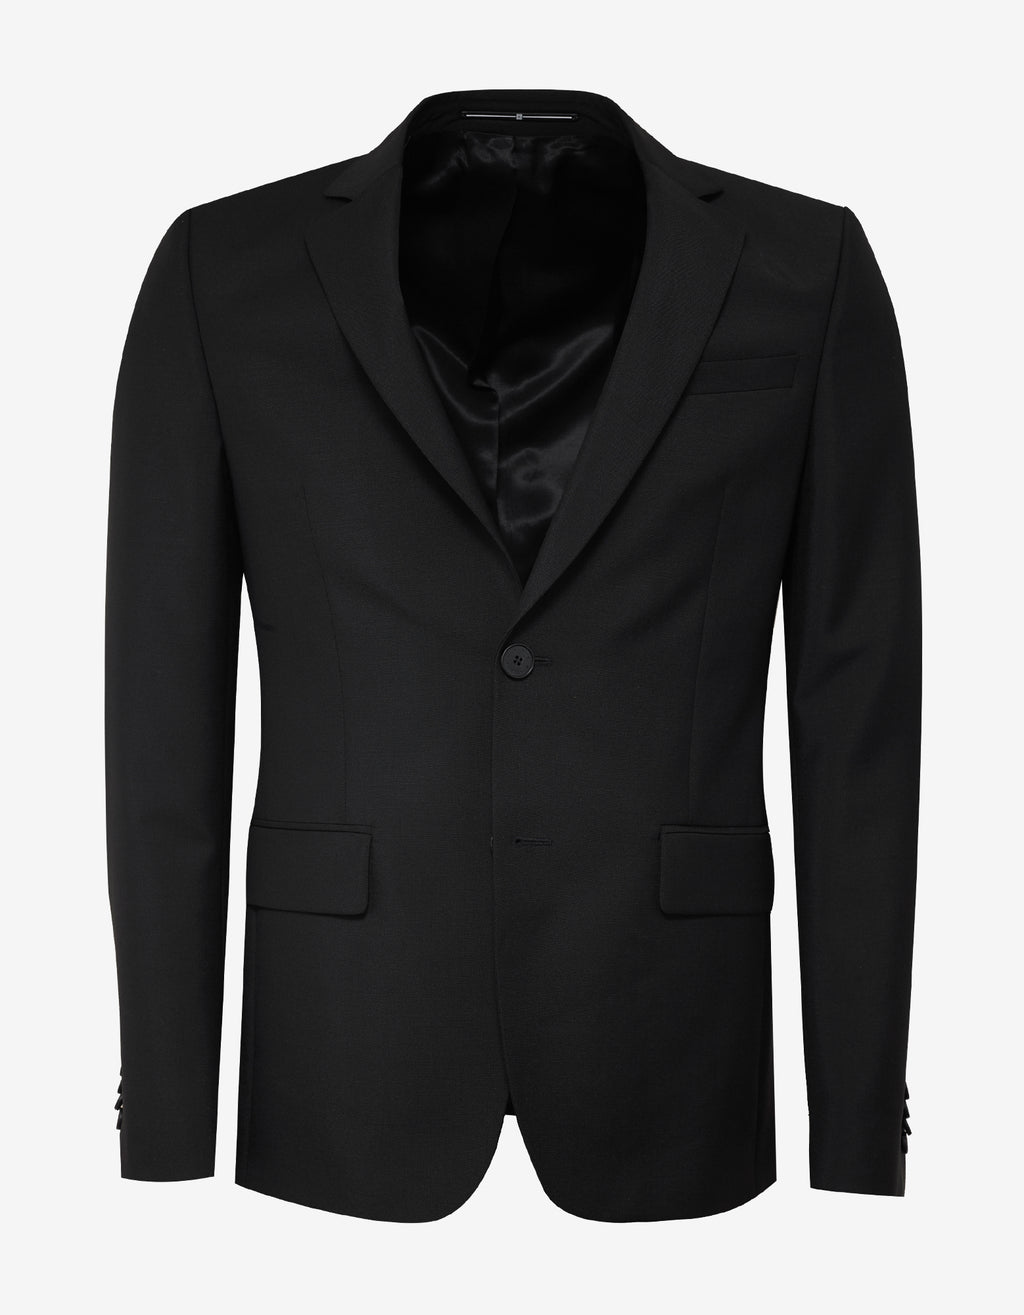 Black Mohair Blend Slim Fit Suit